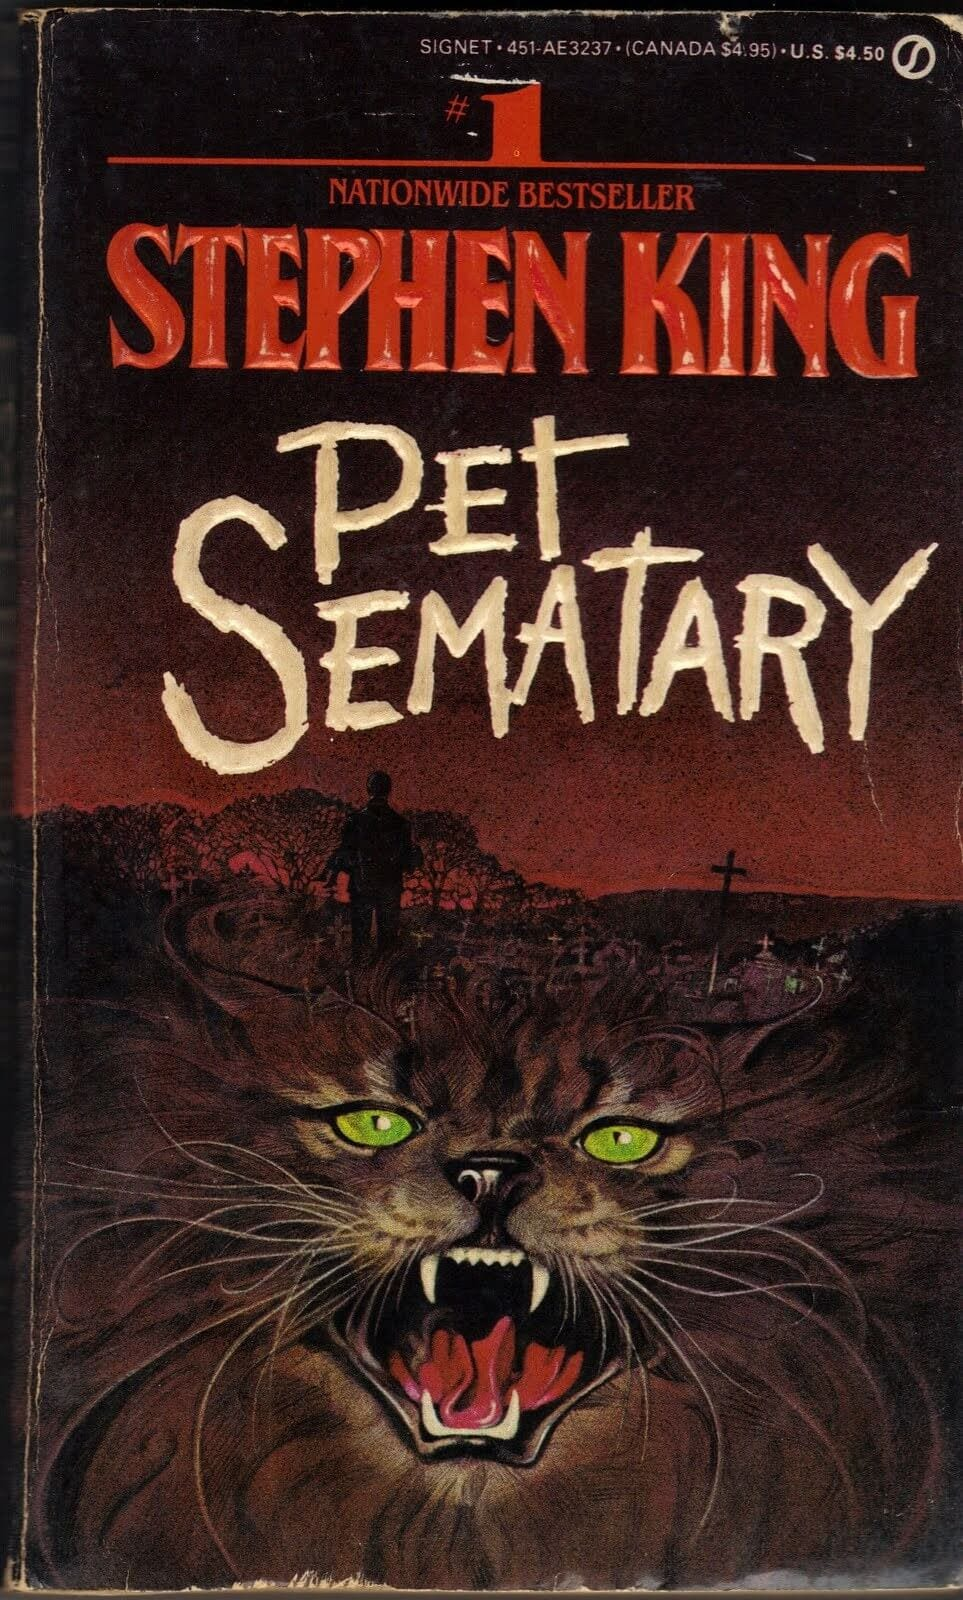 Pet Sematary by Stephen King - Paperback book cover